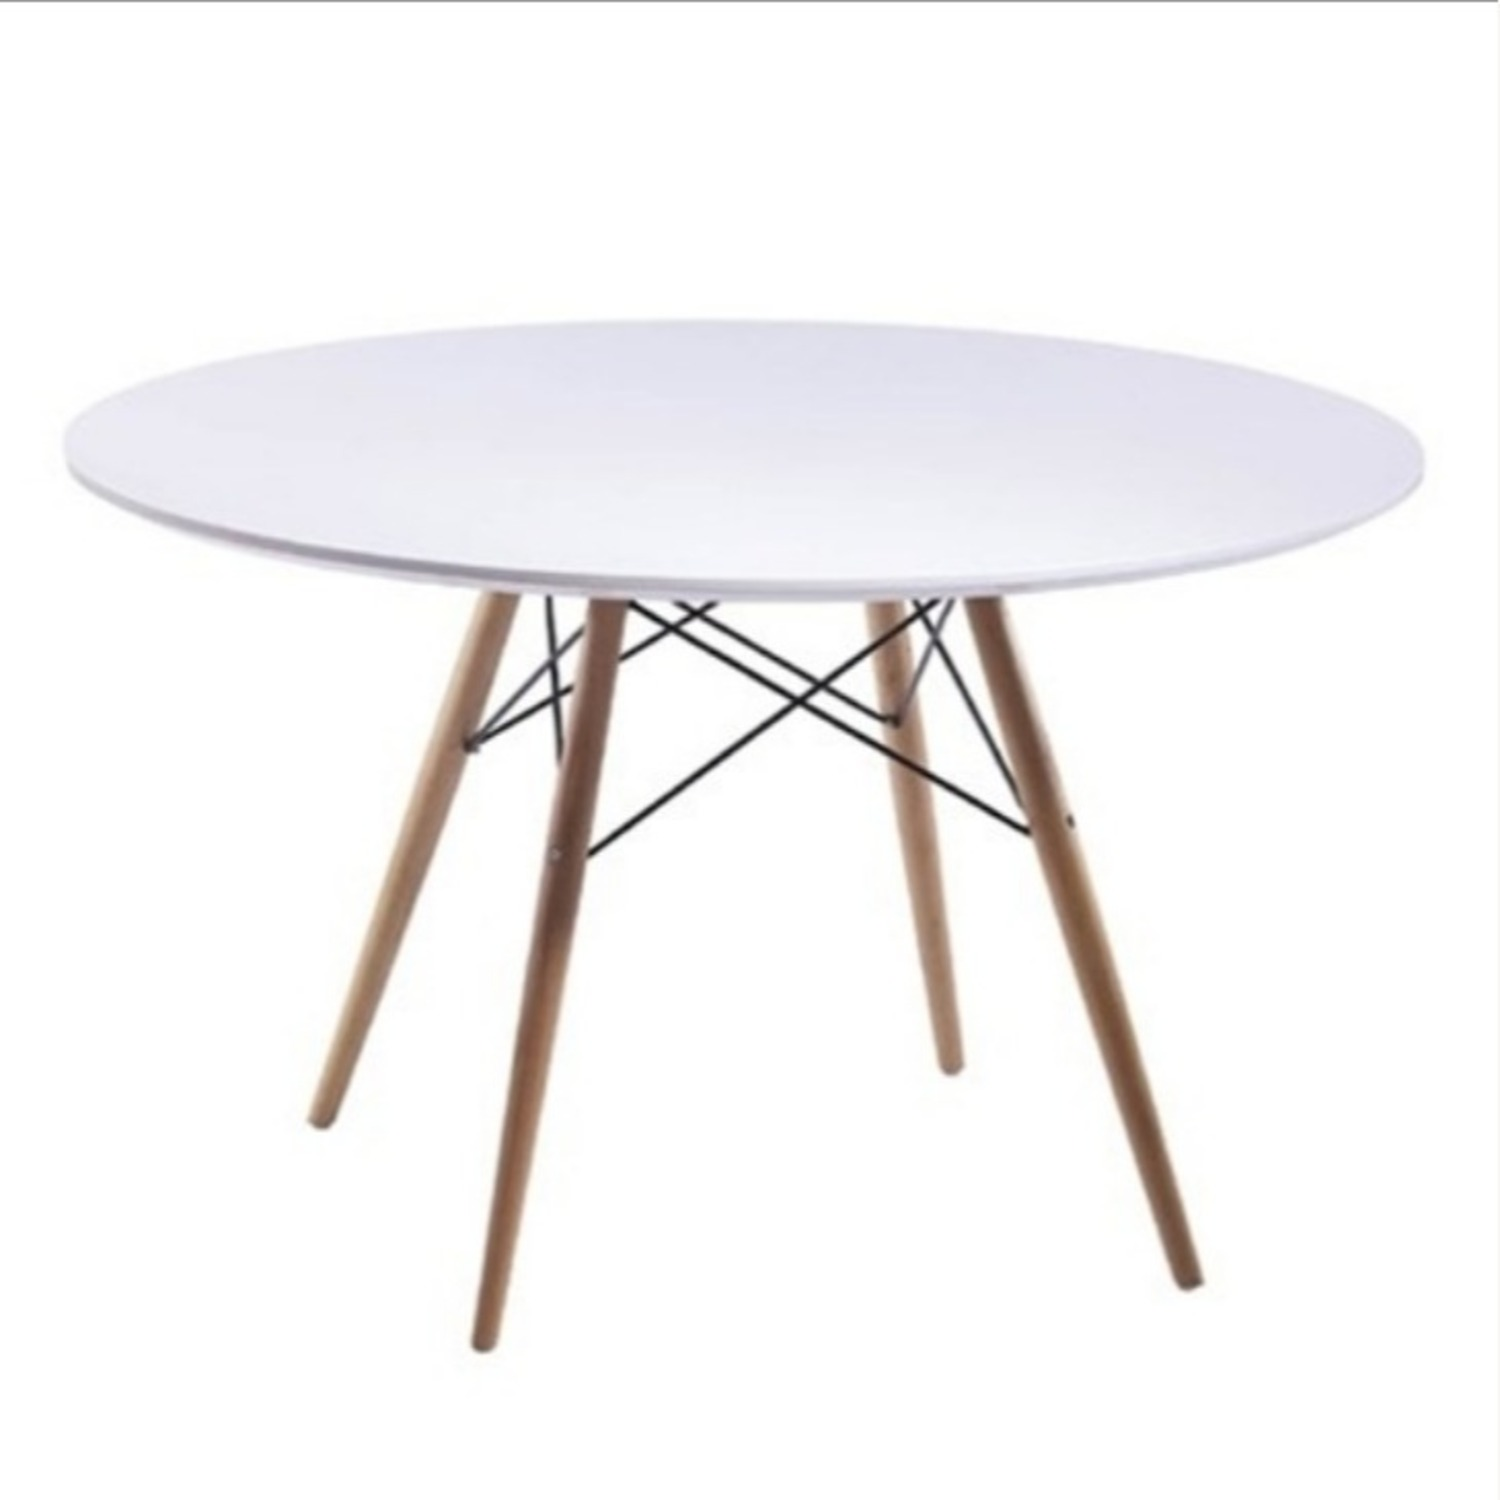 """48"""" Dining Table In White W/ Fiberglass Top - image-0"""